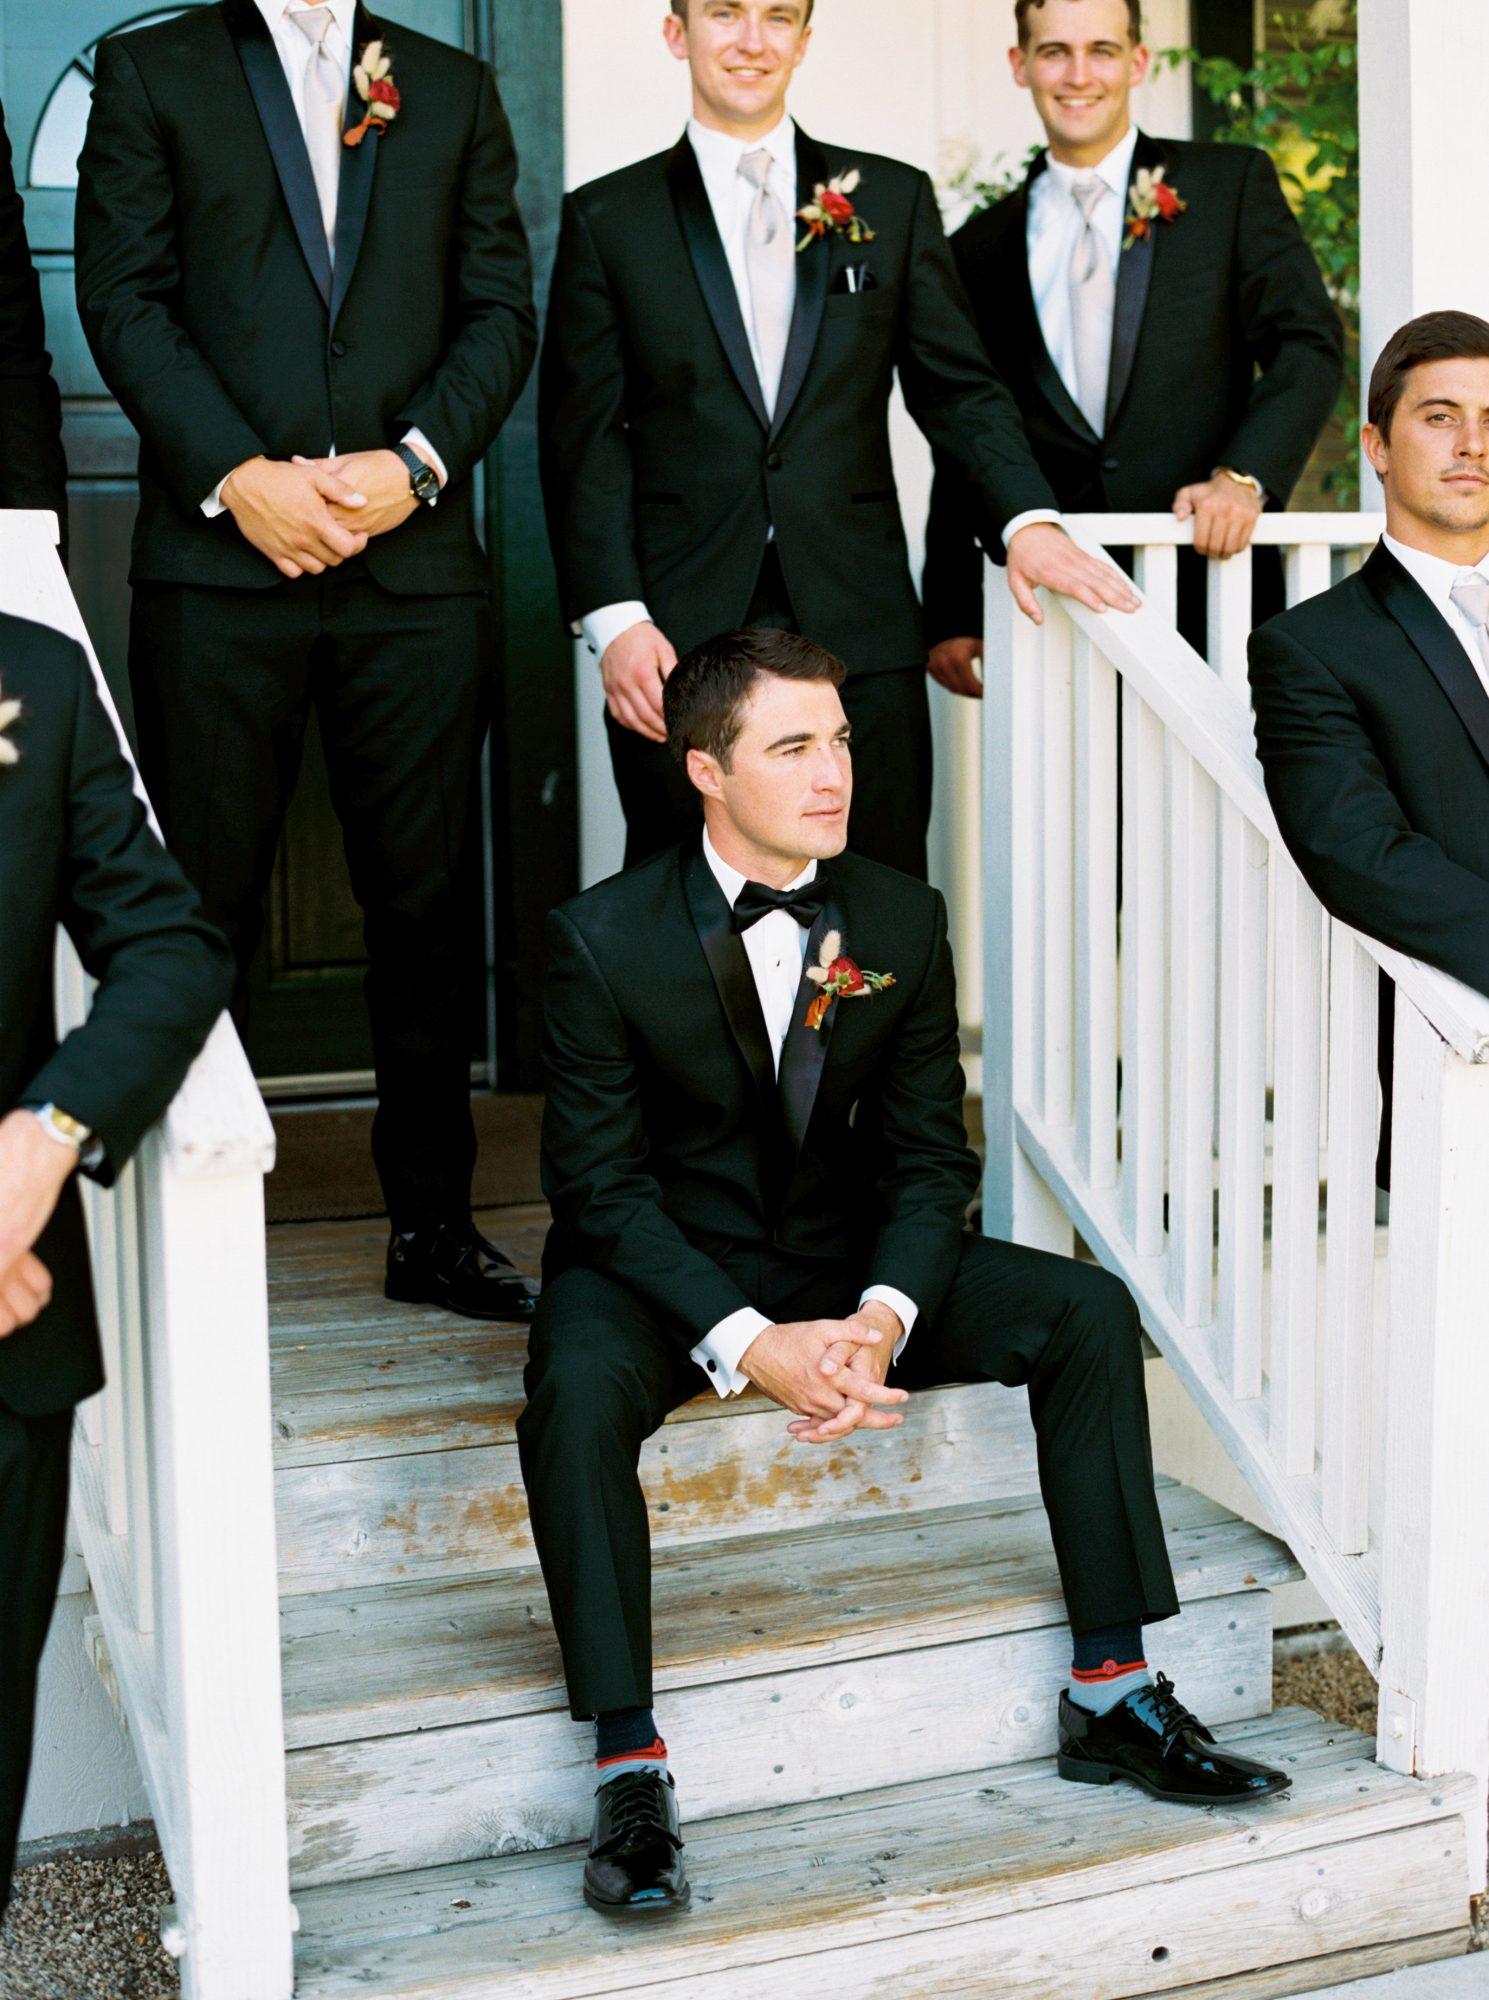 groom and groomsmen waiting on front porch